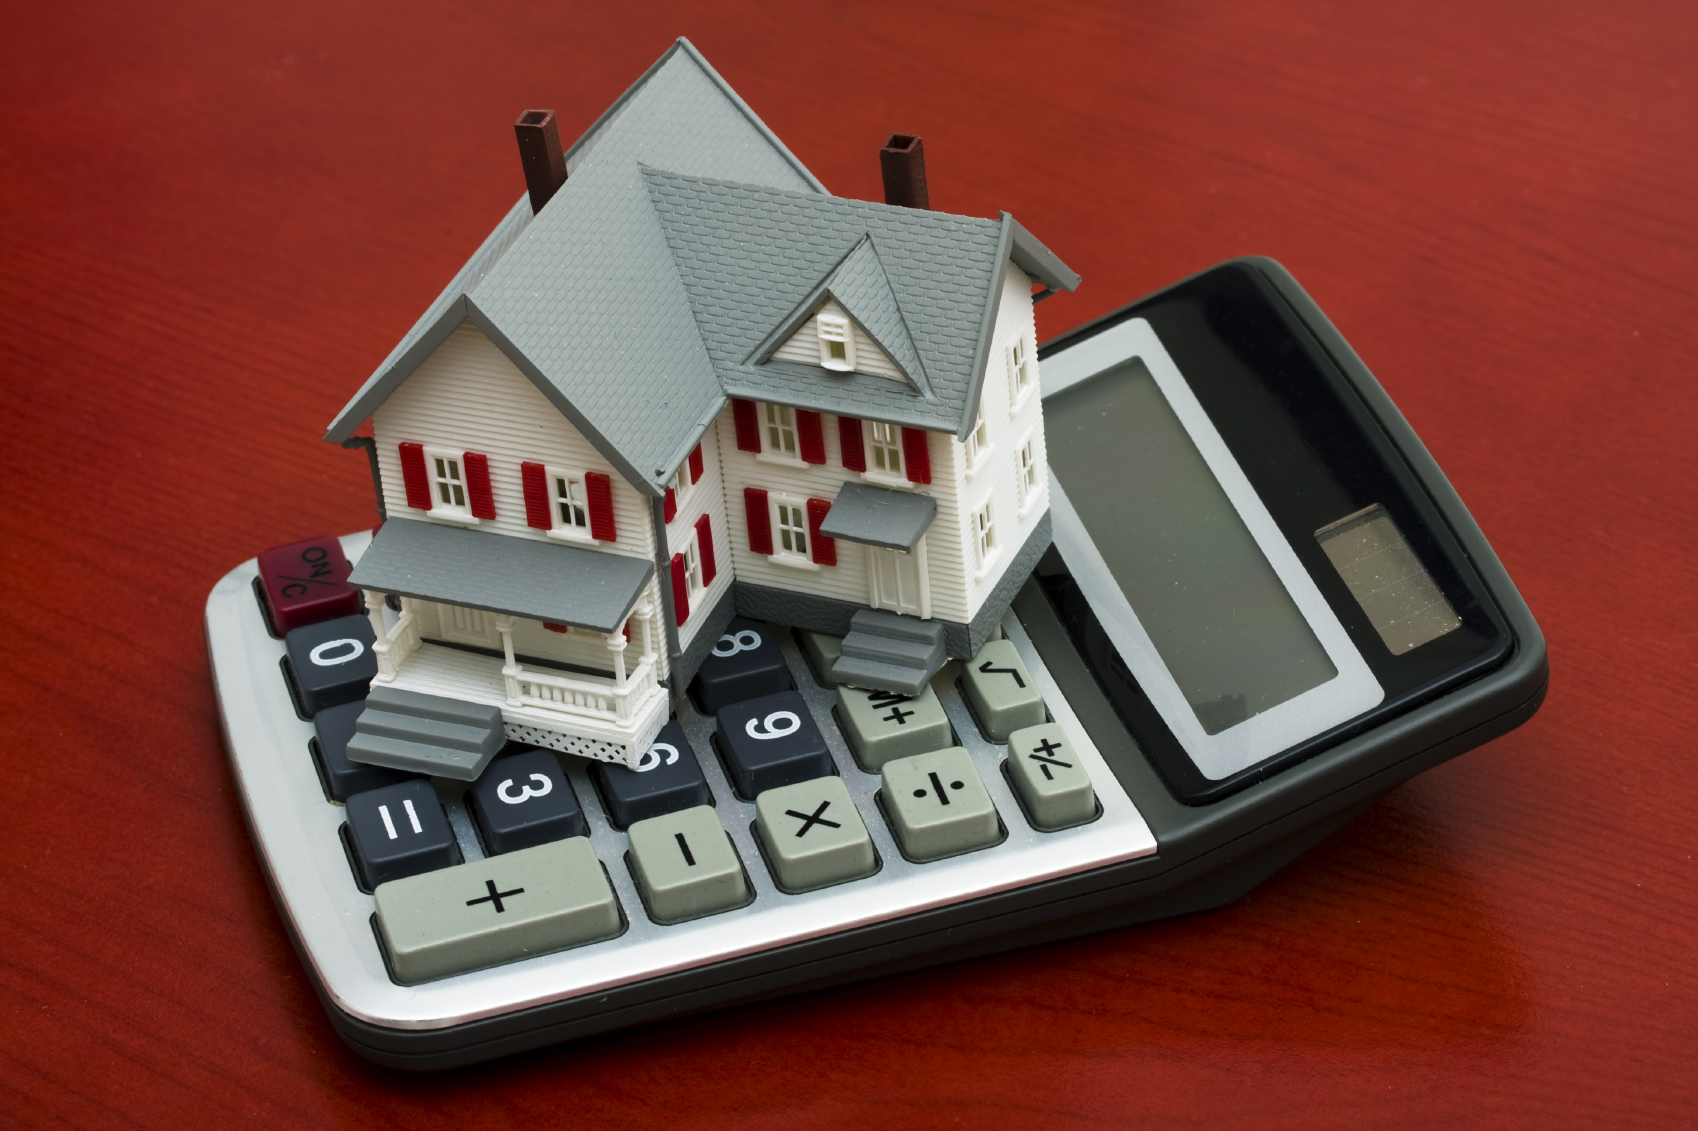 Image: ©iStock - Mortgage Calculator